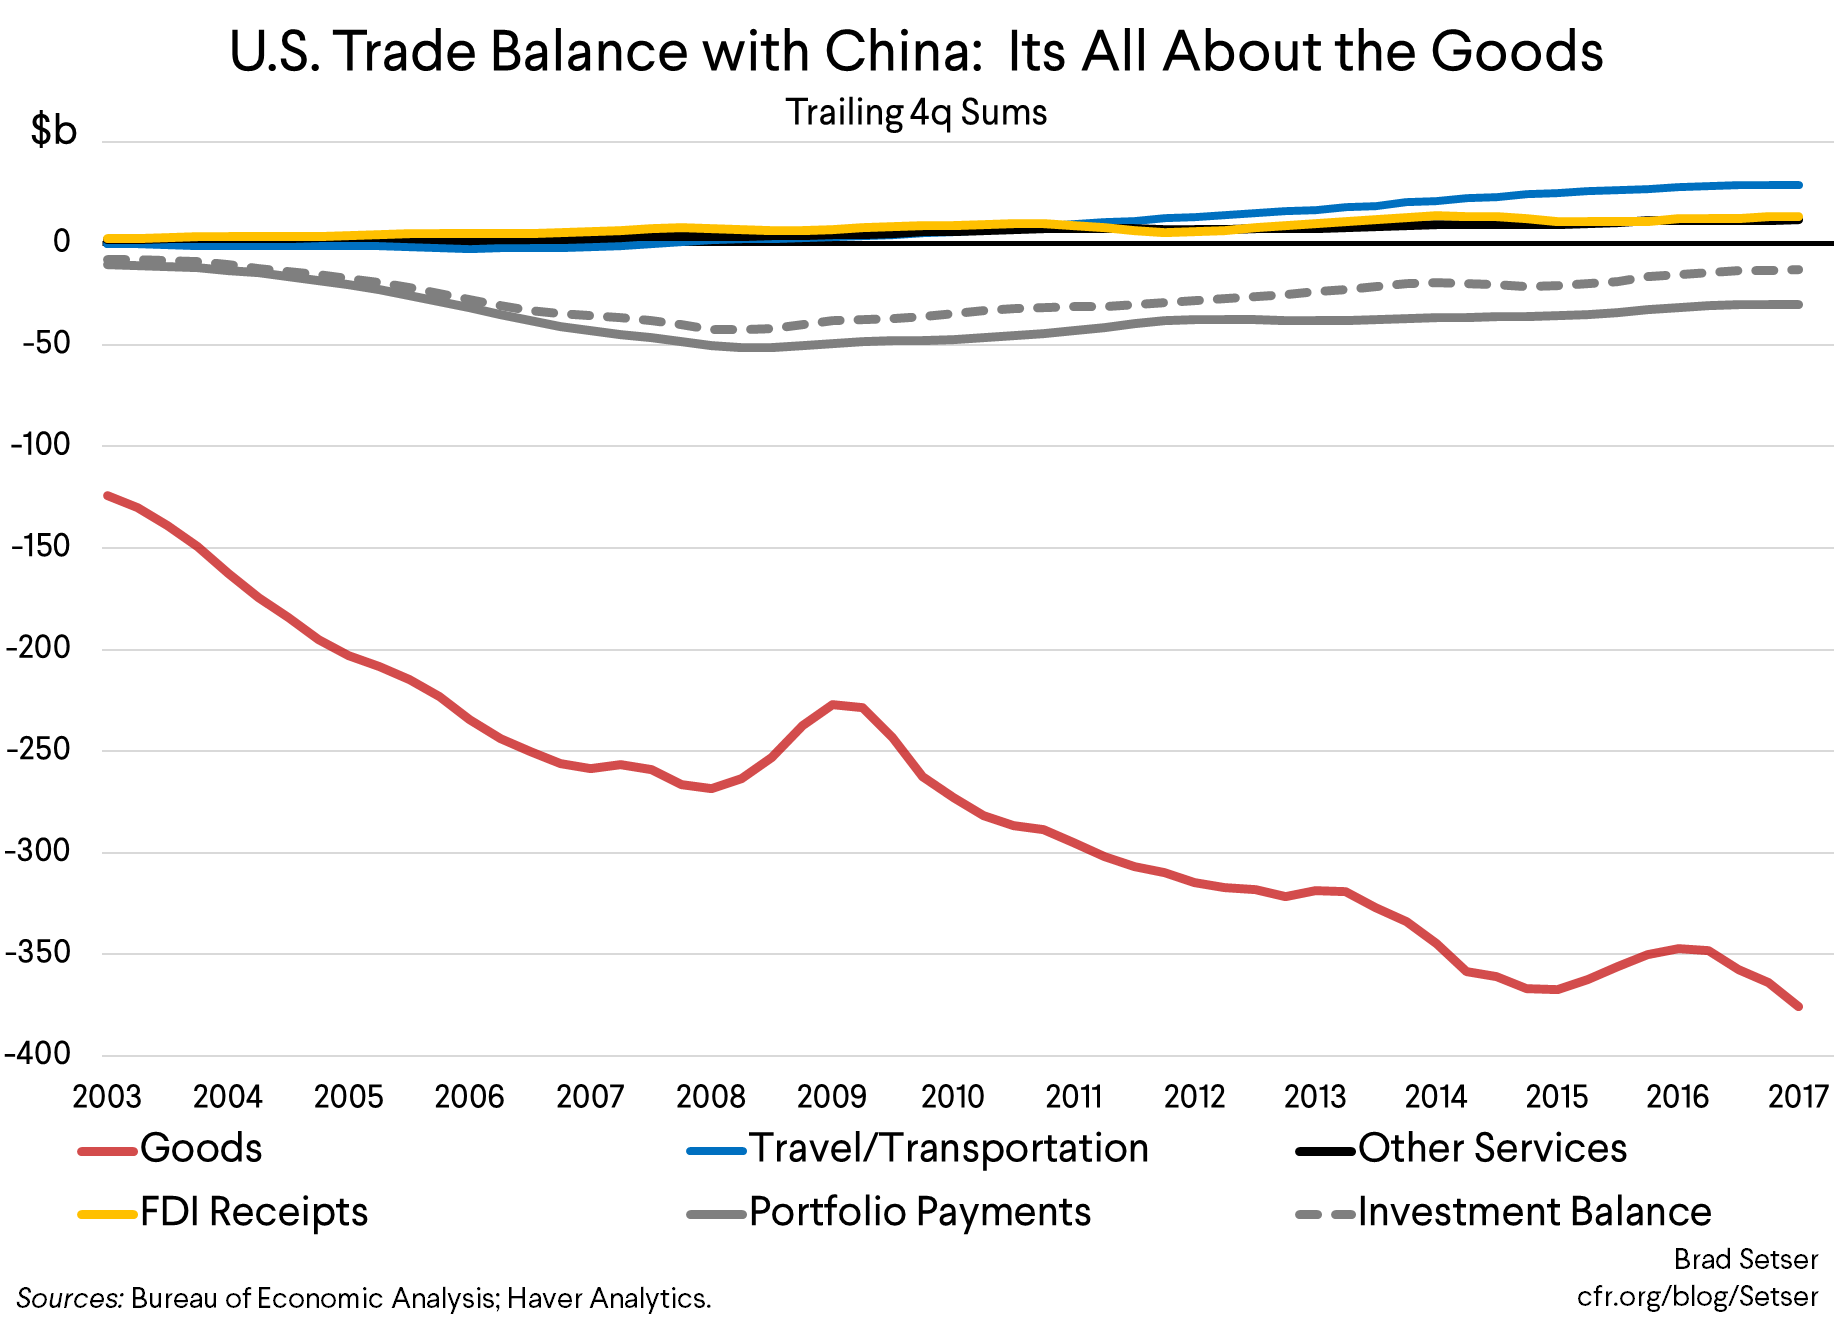 The Right and the Wrong Ways to Adjust the U.S.-China Trade Balance